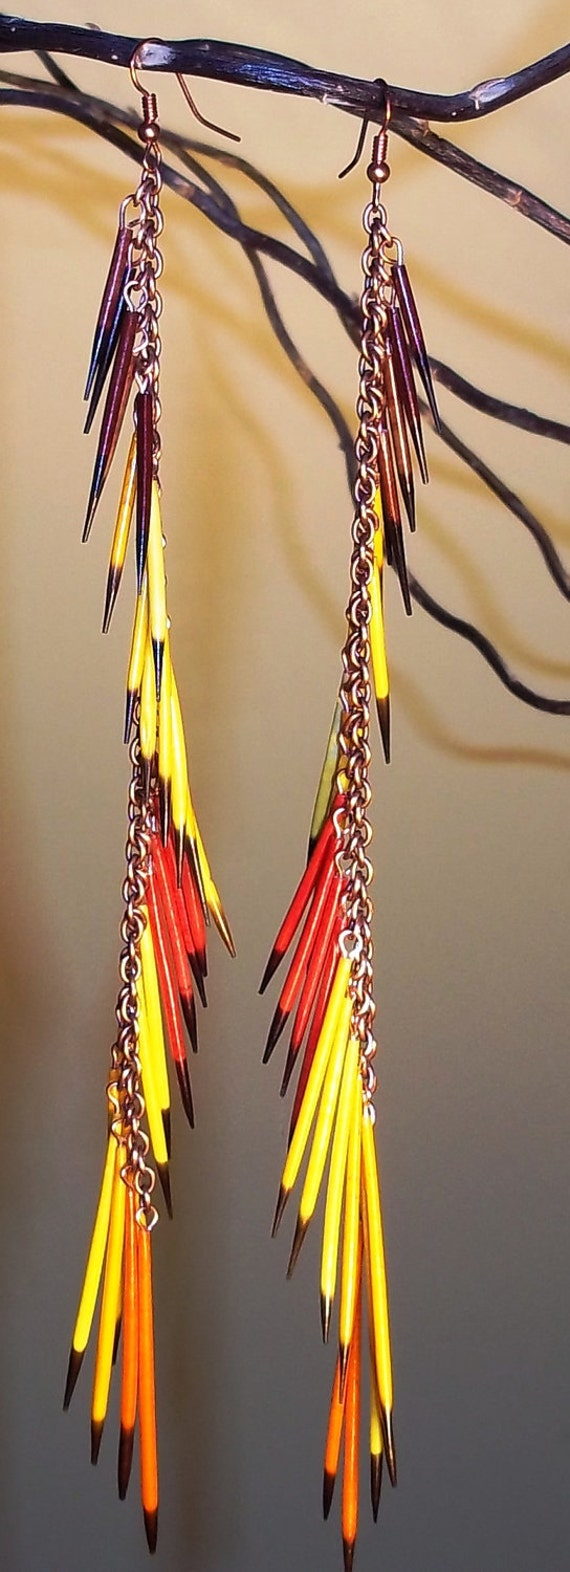 Porcupine quill tassel earrings - Ready to ship